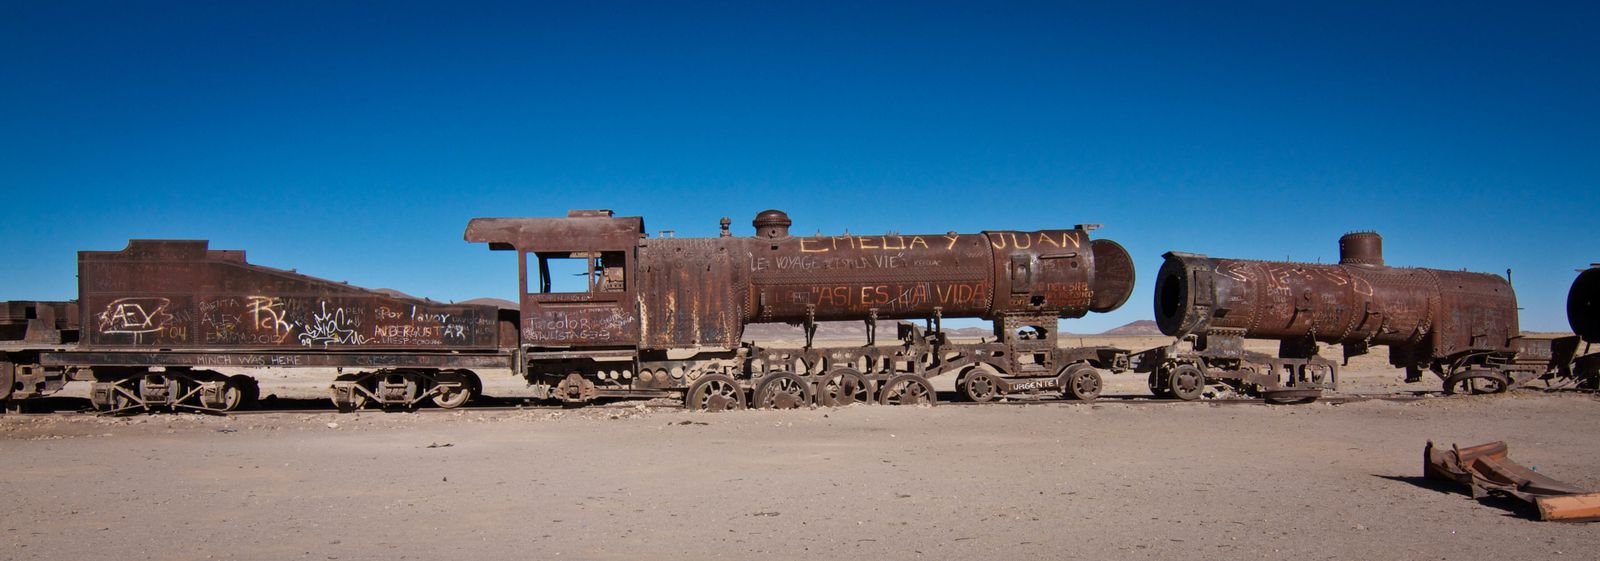 2012: BOLIVIE-Uyuni-Cimetiere-de-train